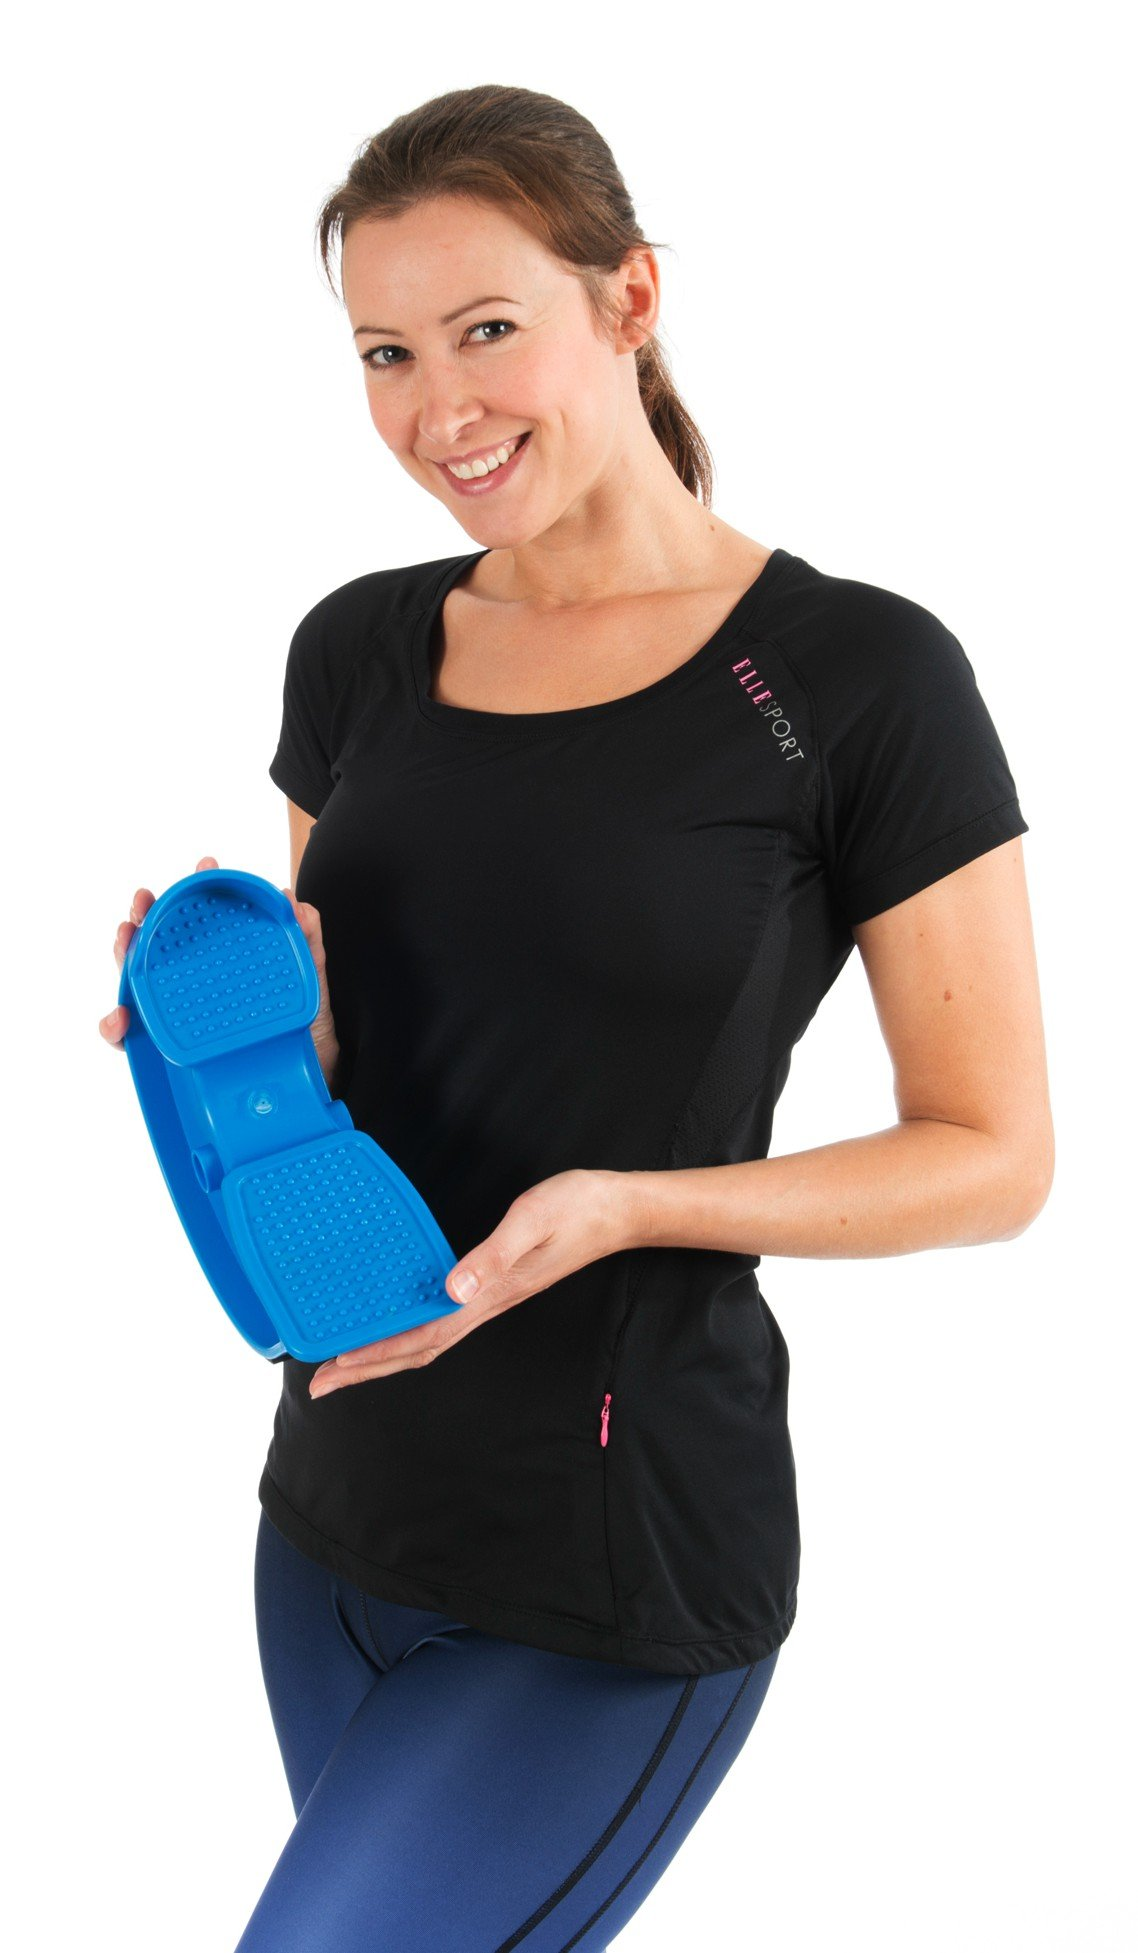 Foot Rocker. Durable Calf Stretcher Device for Achillies Tendonitis. Improve Plantar Fasciitis, Calf Flexibility, Ankle Mobility. Feet and Shin Splint Relief. Great for Physical Therapy, Athletes, Phy by Natural Chemistree (Image #9)